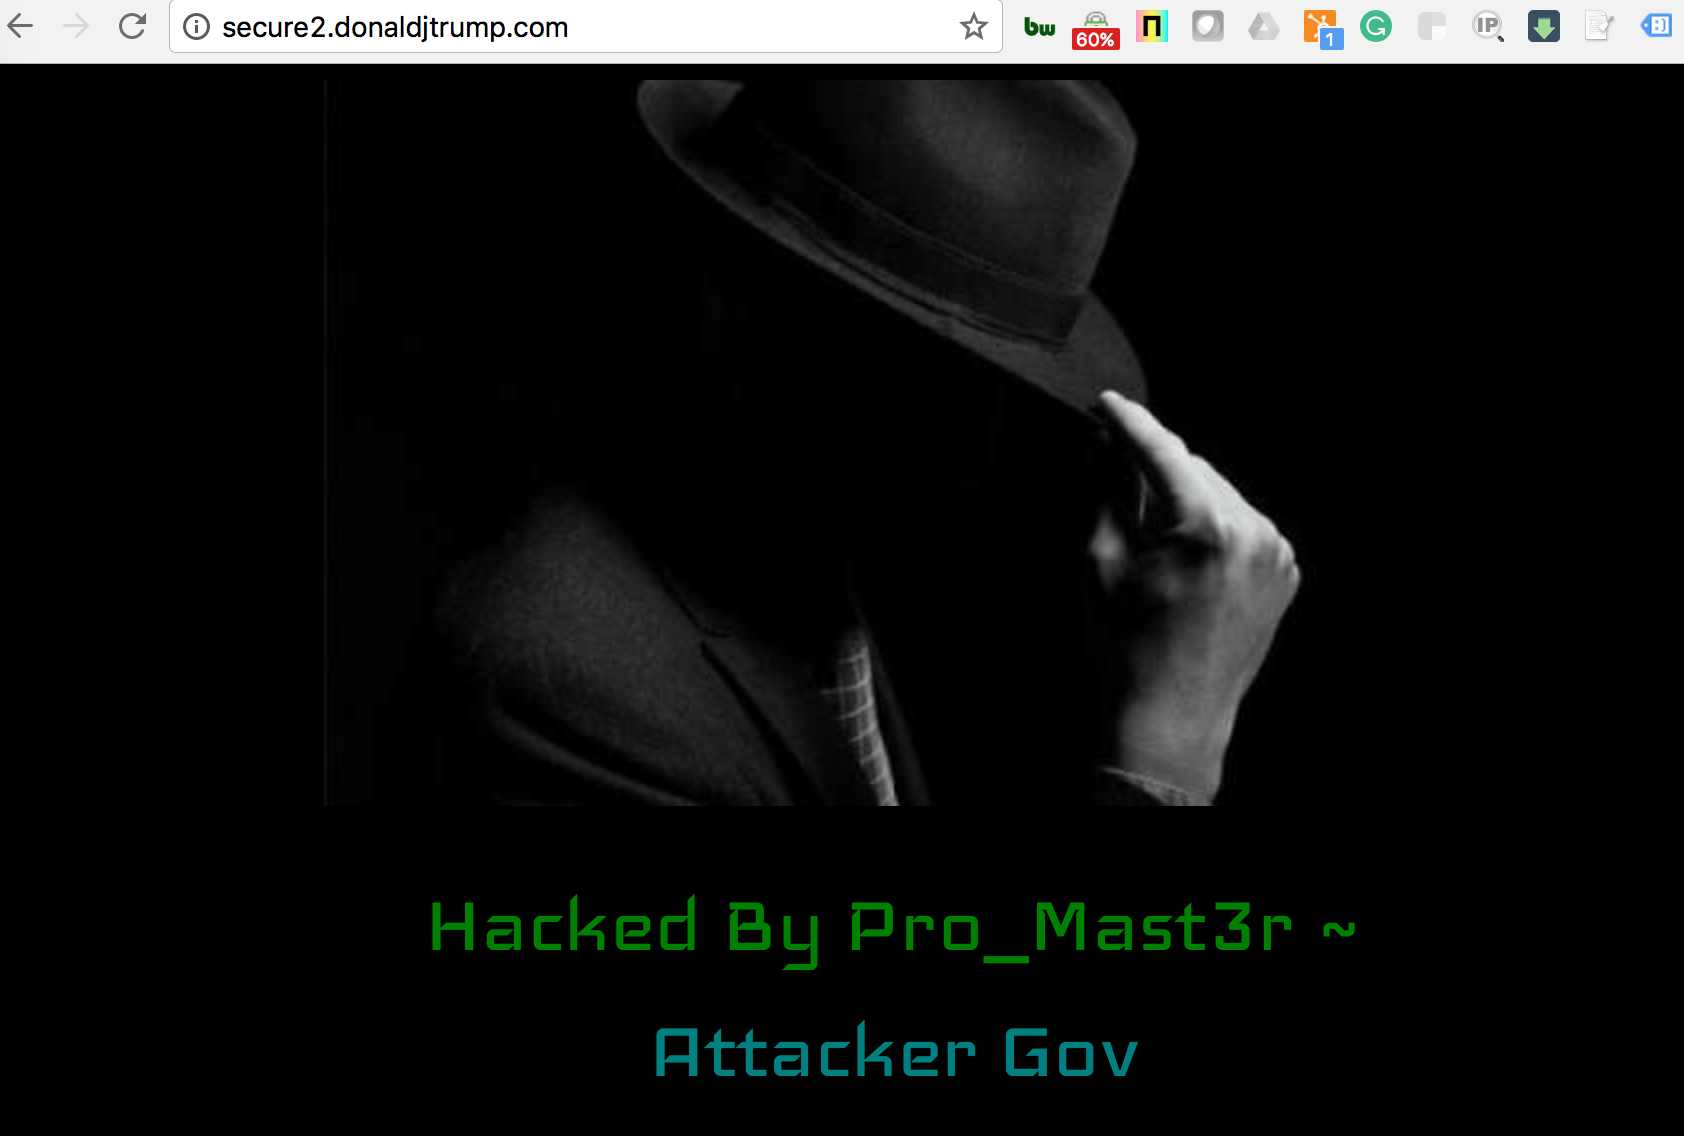 Donald Trump website subdomain defaced